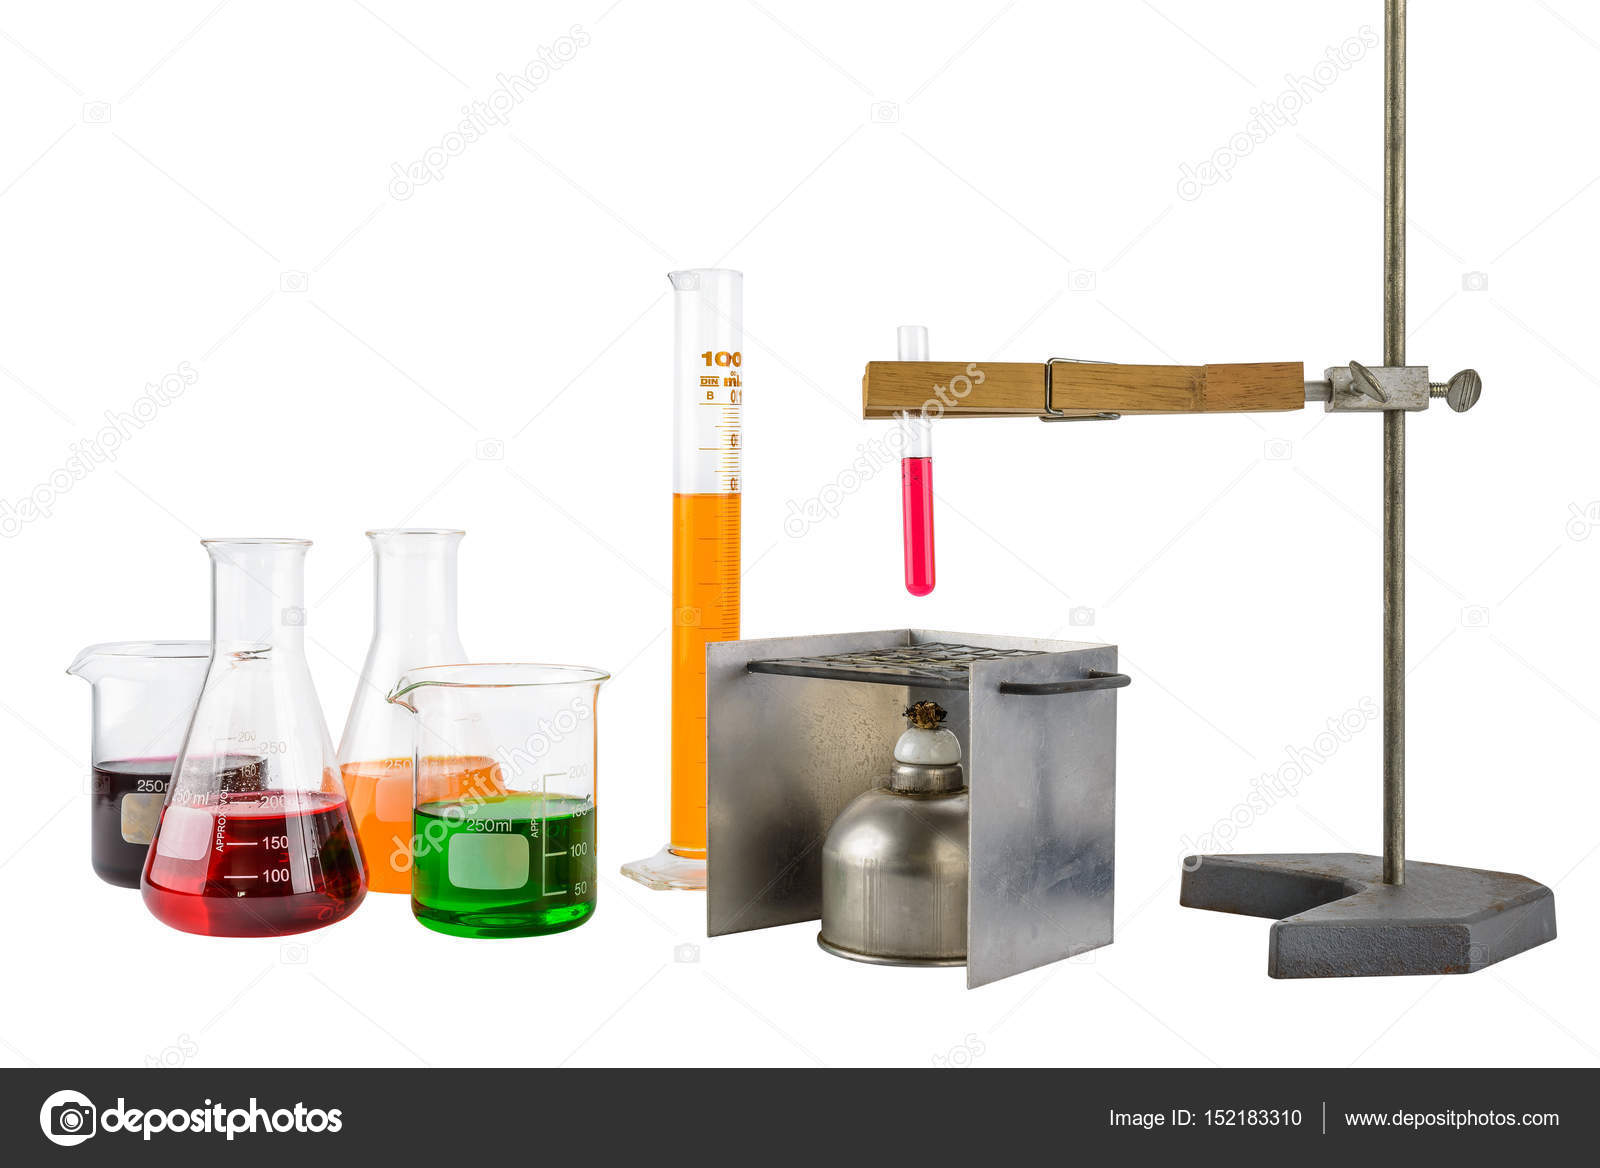 bromine and test tube holders A test tube holder is an apparatus designed to support and store test tubes during a scientific experiment a test tube is a thin-glassed tube with one closed end used in the examination of cultures.